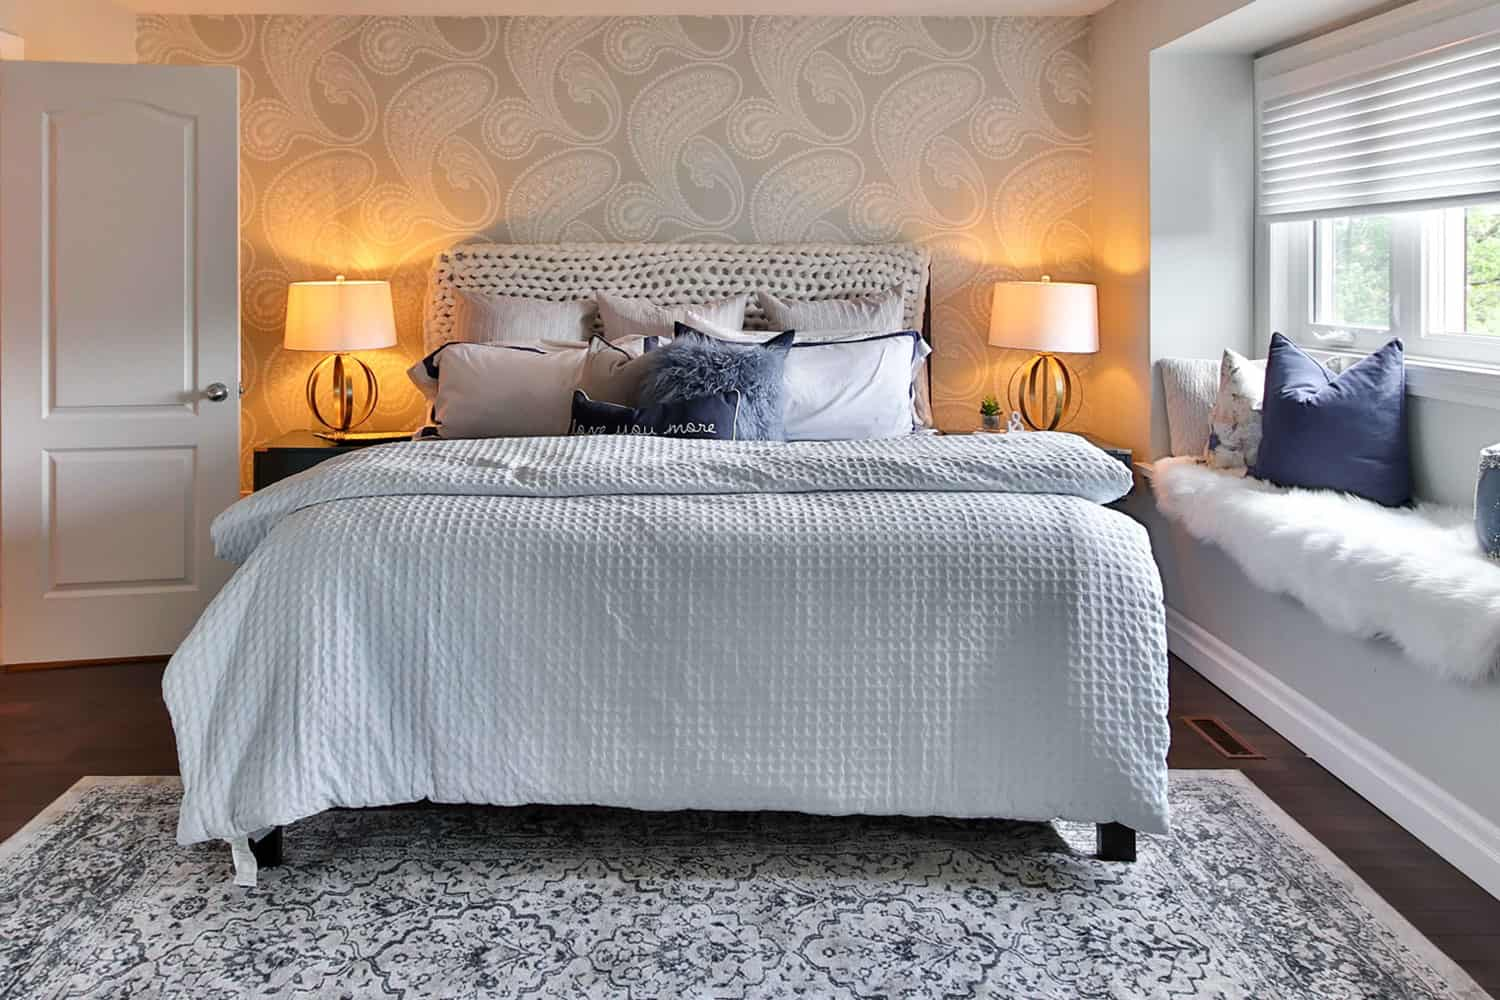 7 Apartment Bedroom Decorating Ideas To Fall In Love With Apartmentguide Com